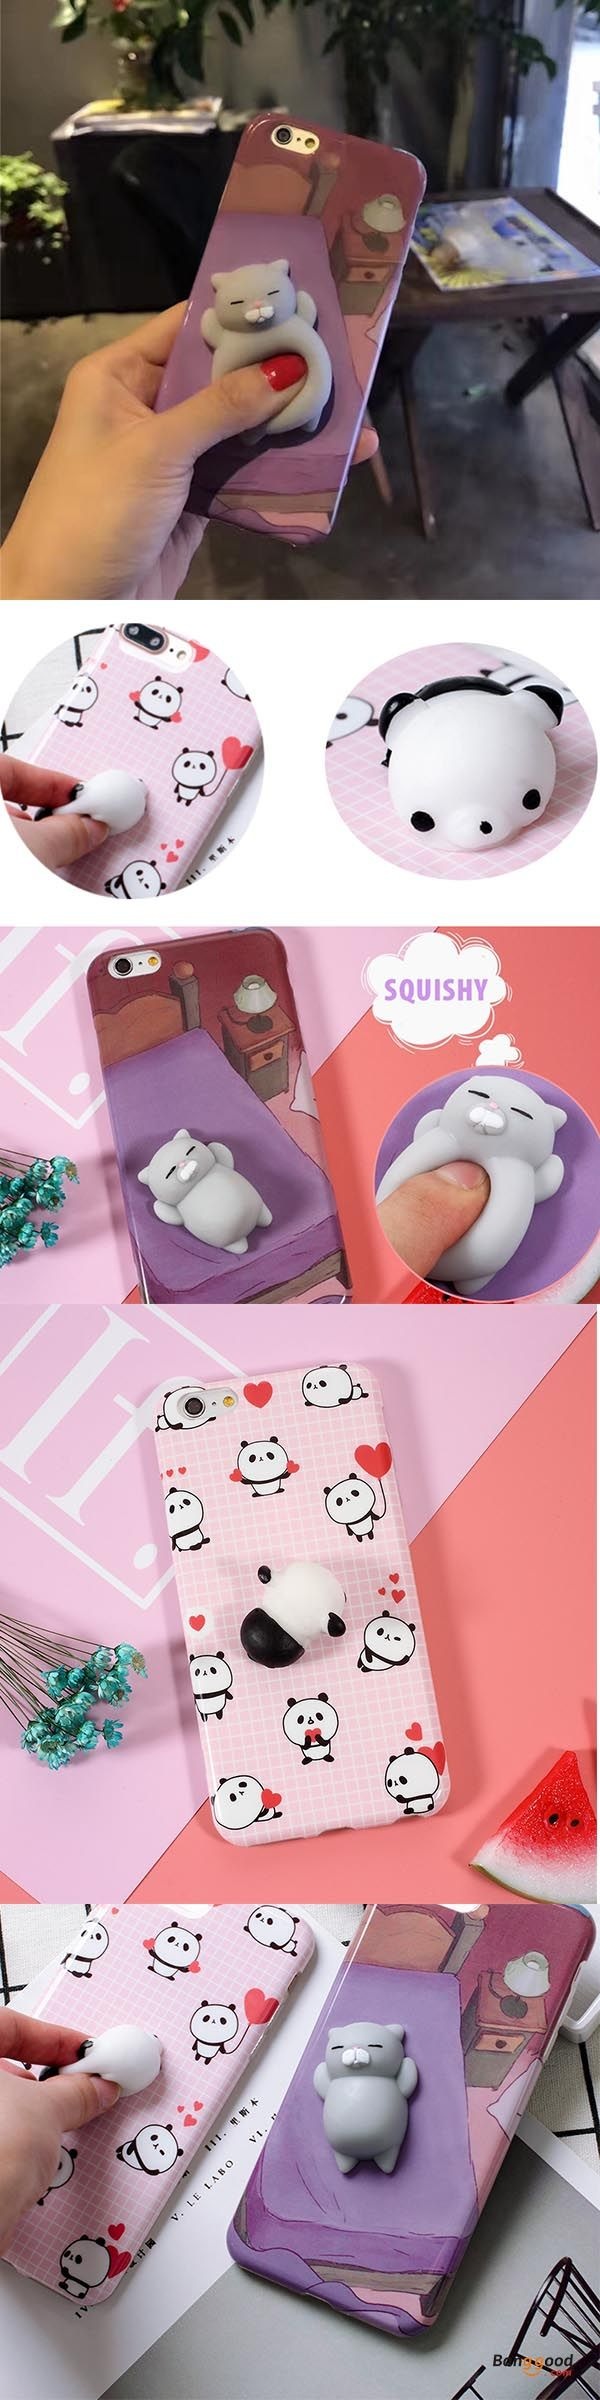 US$7.99 + Free shipping. Bakeey™ Cartoon 3D Squishy Squeeze Slow Rising Cat Panda Soft TPU Case for iPhone 6 6s& 6Plus 6sPlus. Shockproof, Squishy, Cute Soft Animal. Pick one for yourself!